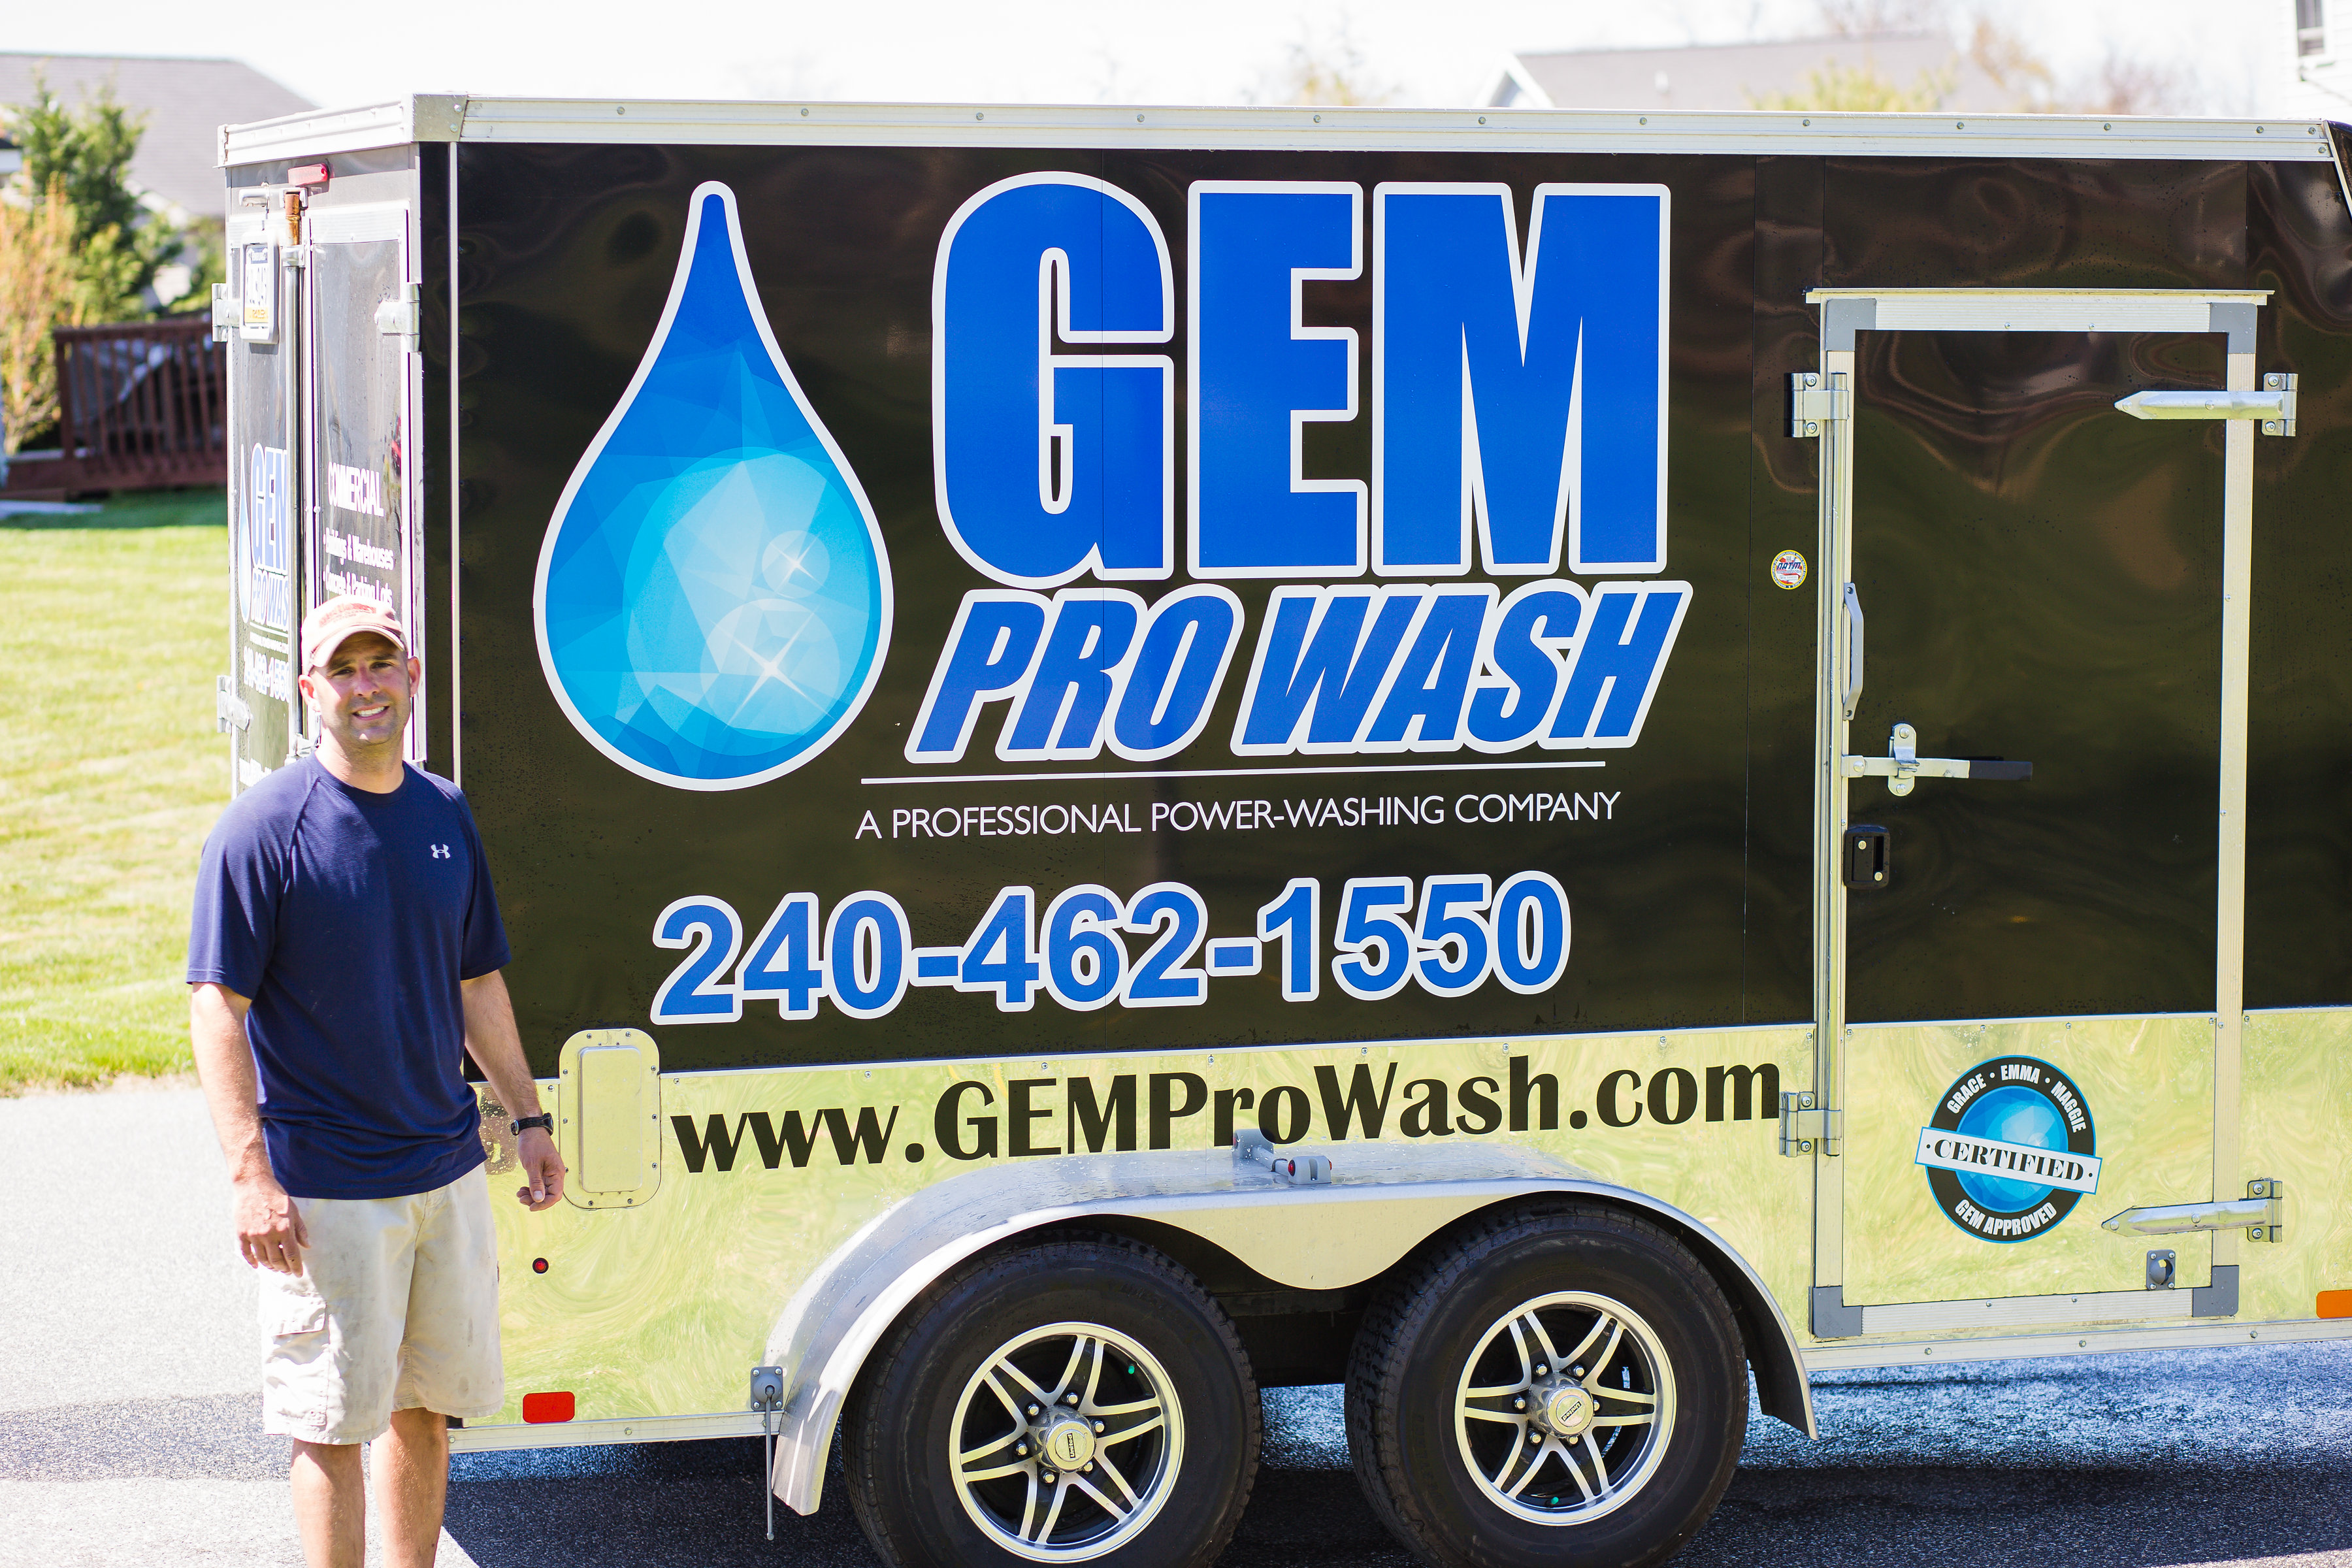 Gem Pro Wash | House Washing Contractor in Martinsburg WV